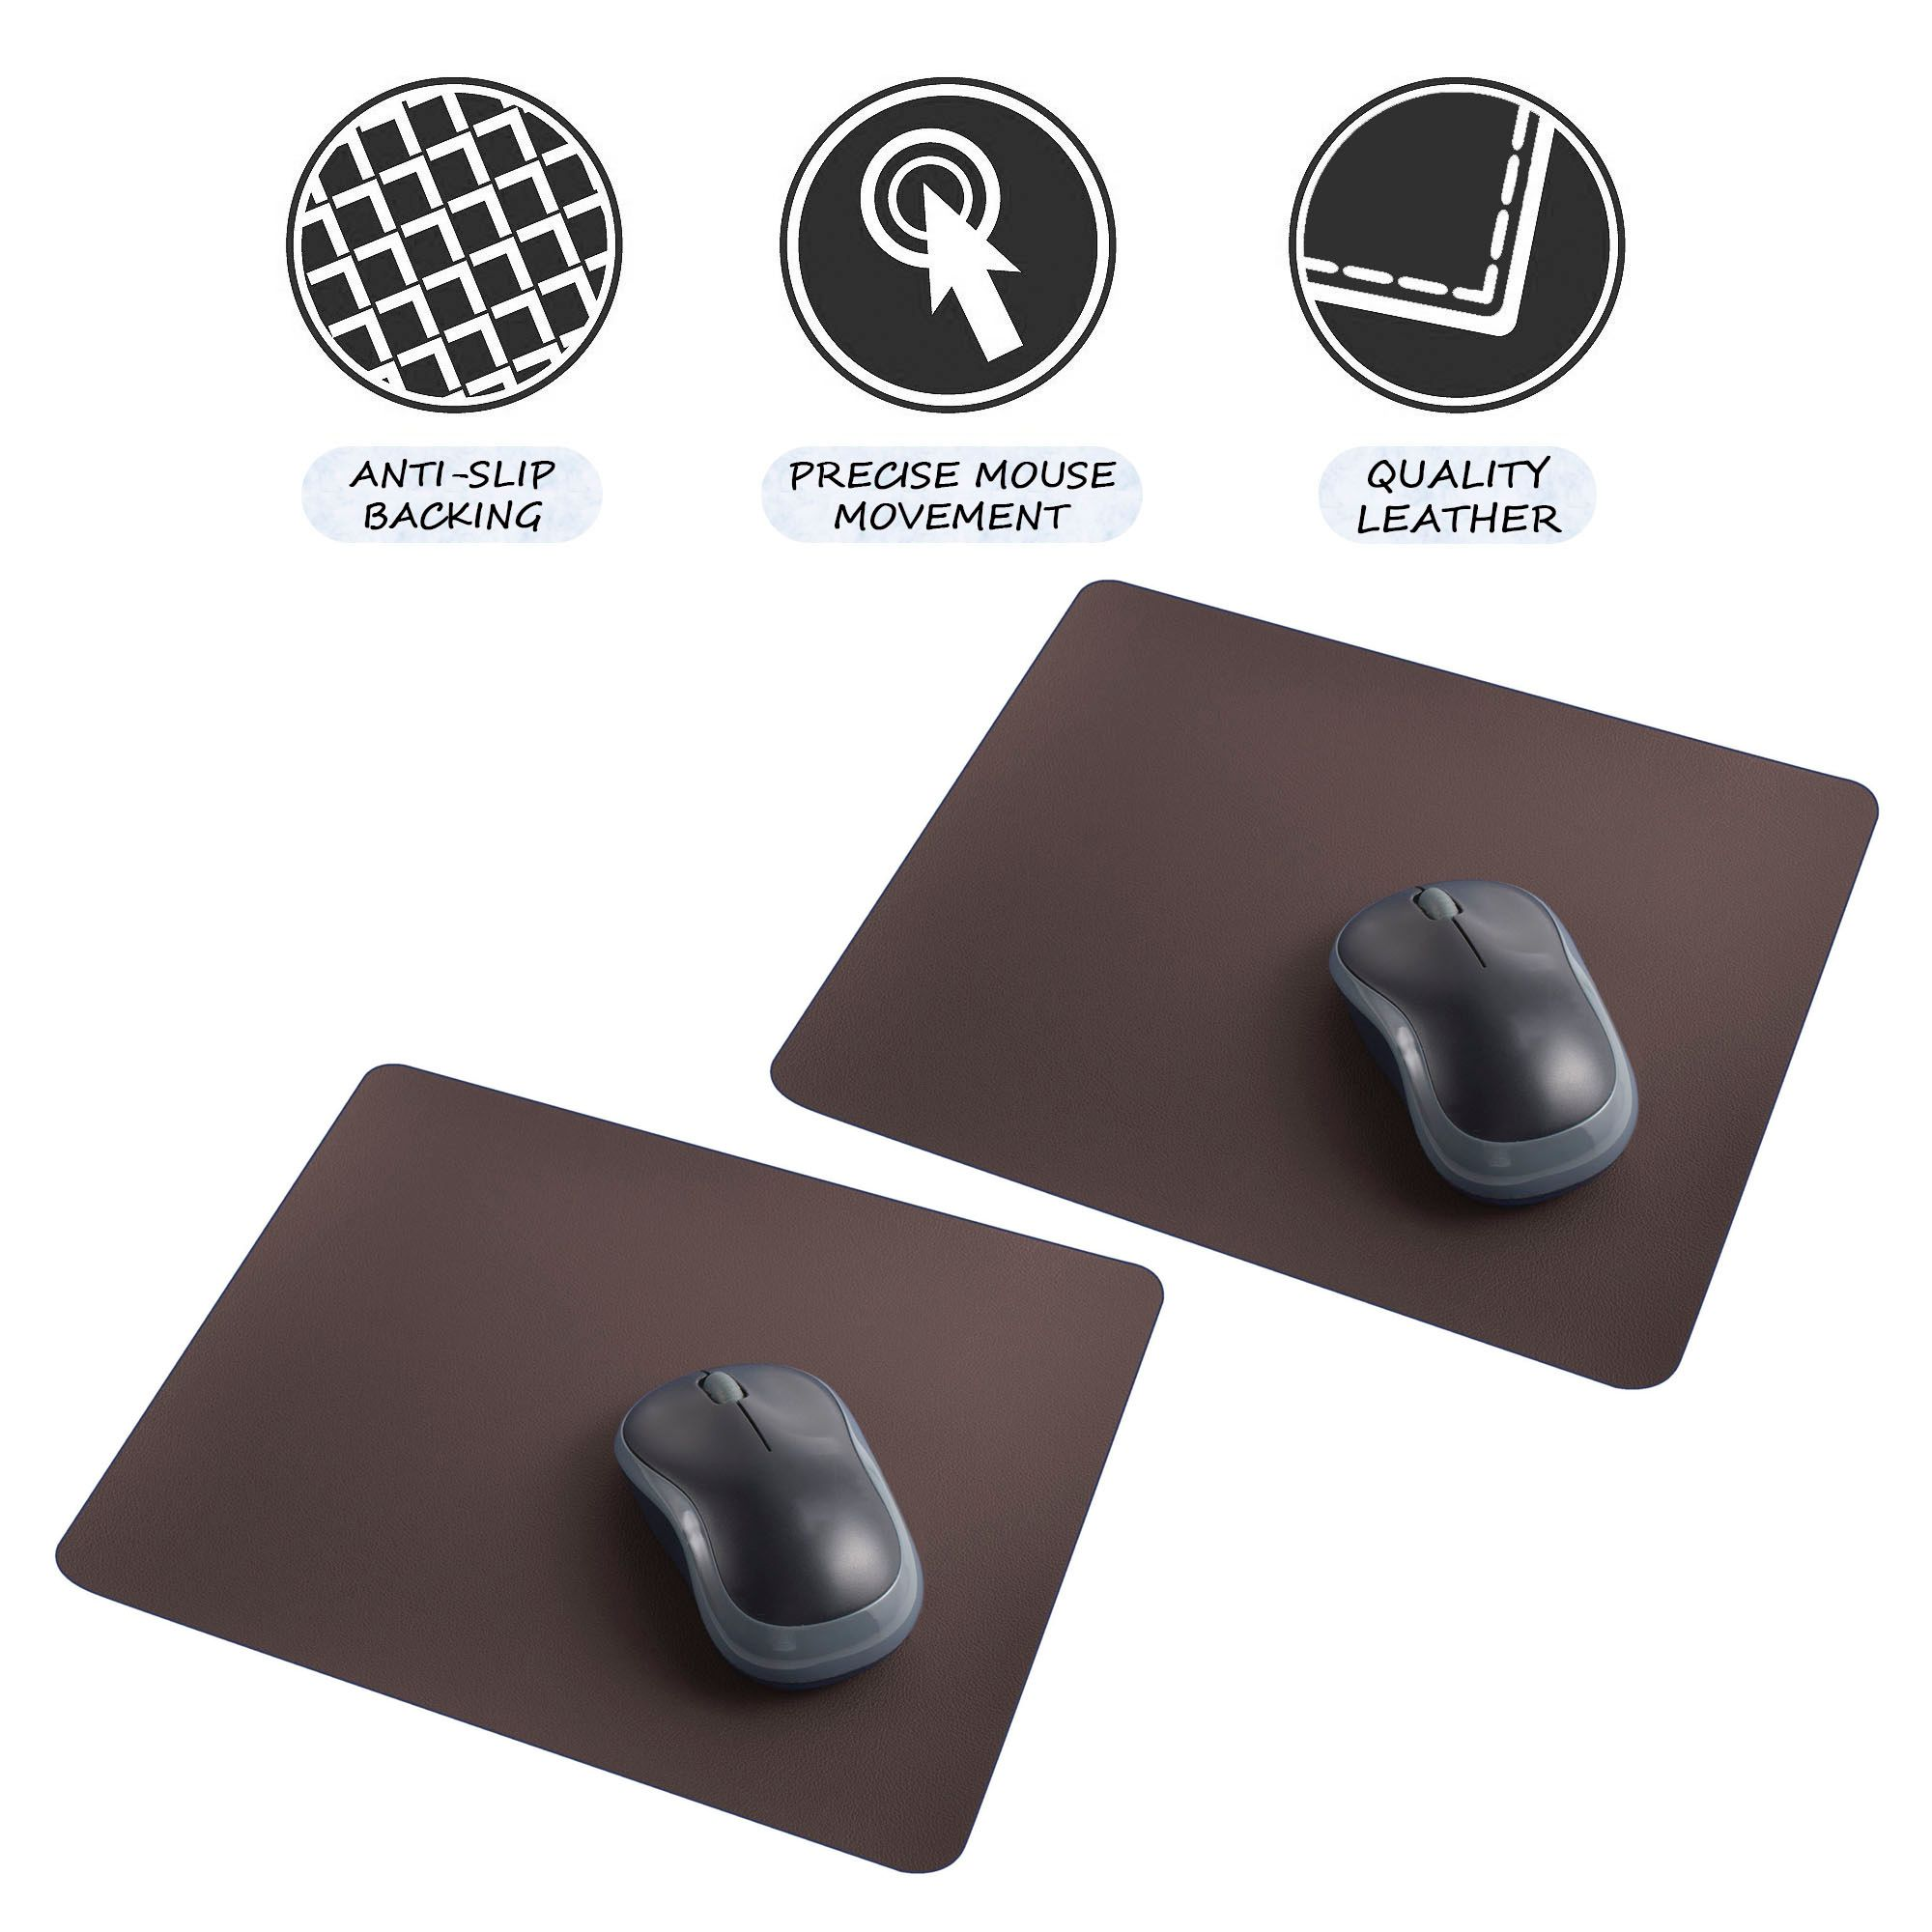 Leather Mouse Pad by Insten 2-Pack Premium Leather MousePad with Non Slip & Super Smooth & Elegant Stitched Edges (Size 9.45 x 7.87 inch) Brown